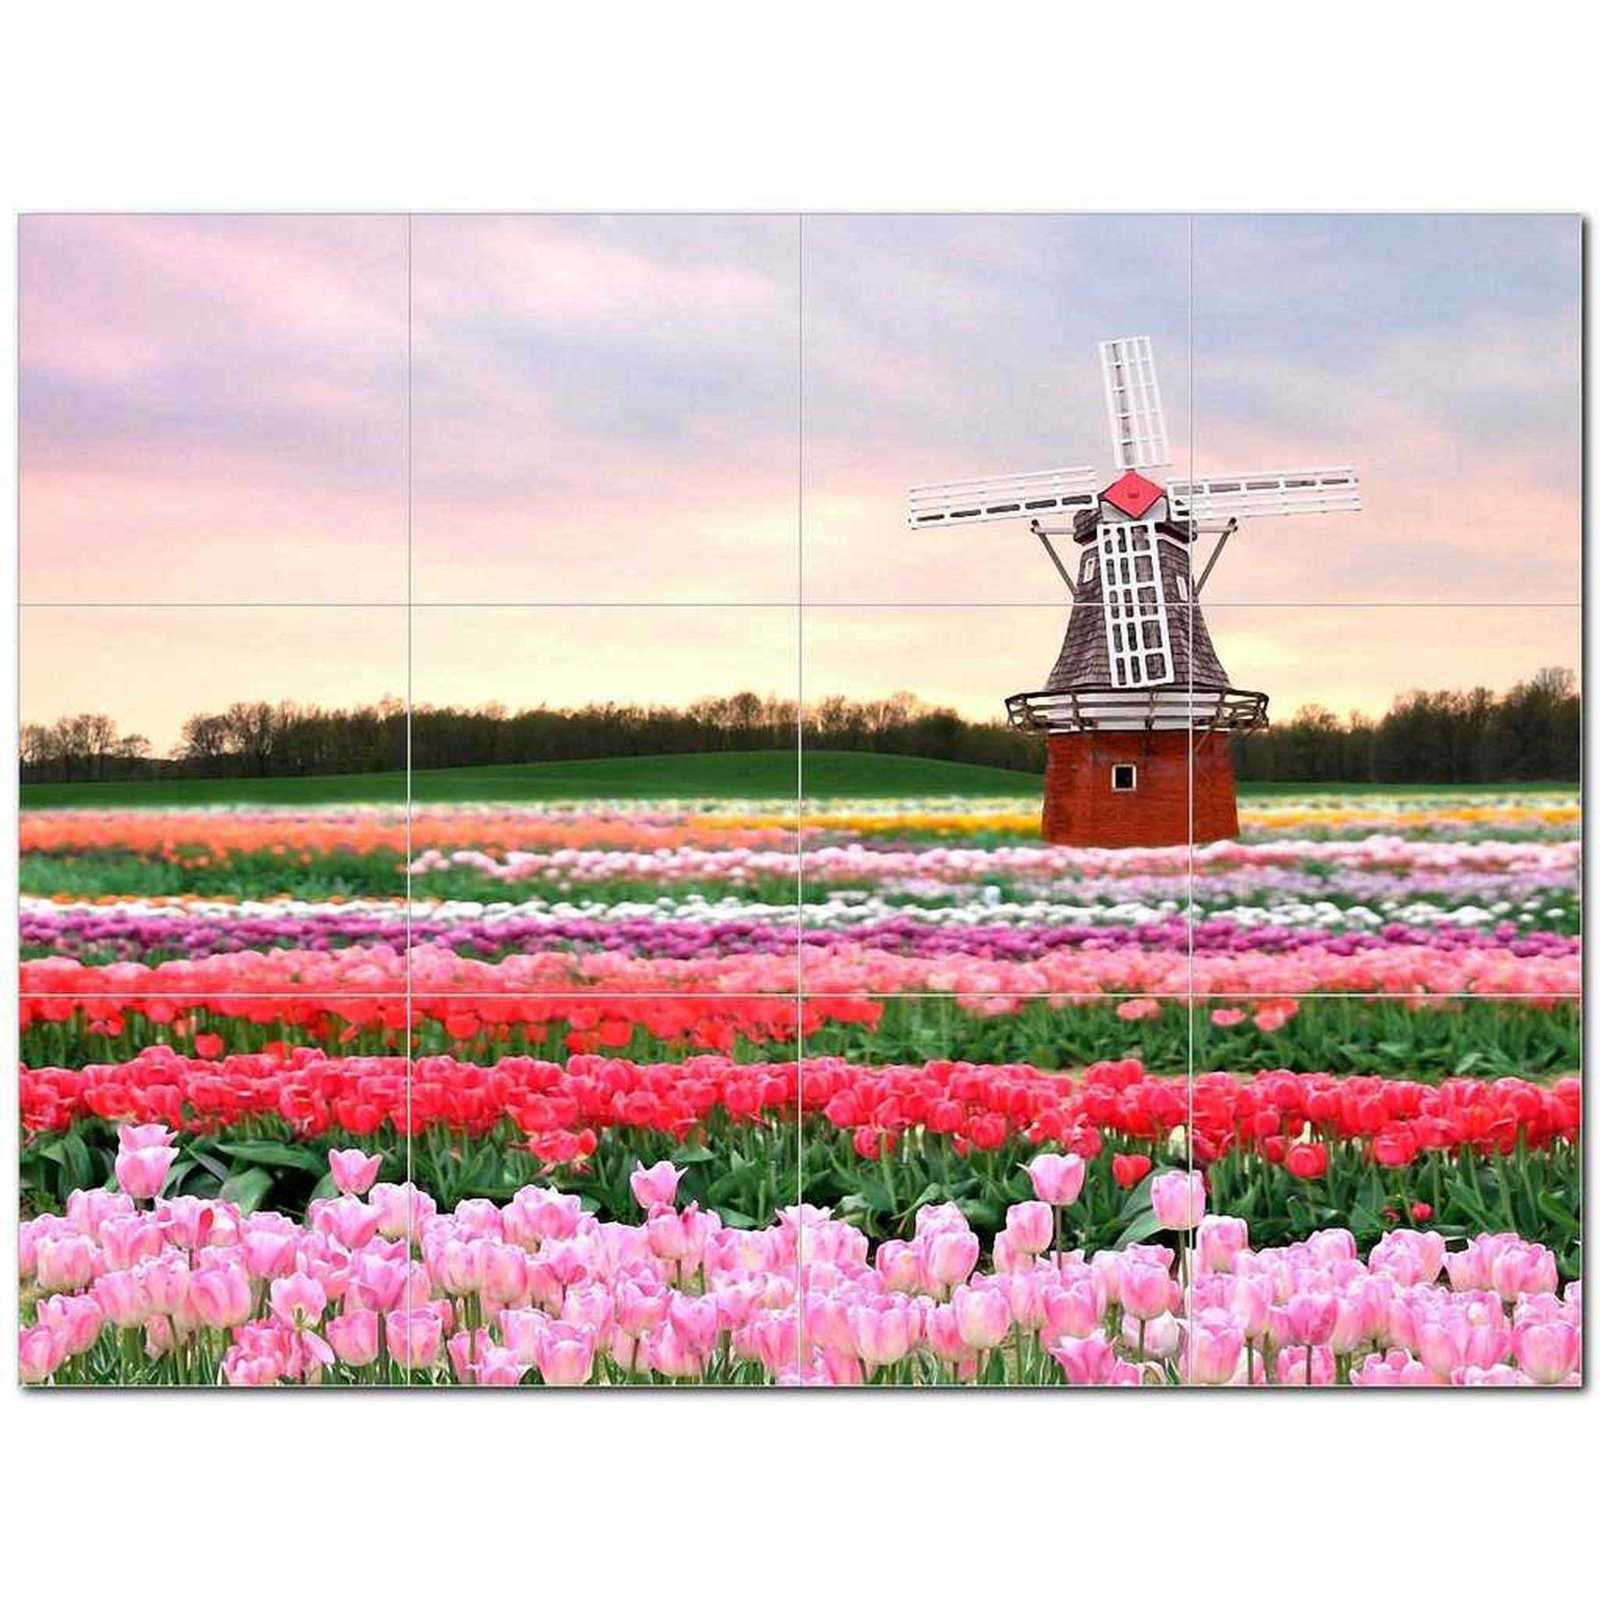 Primary image for Windmill Picture Ceramic Tile Mural Kitchen Backsplash Bathroom Shower BAZ406346